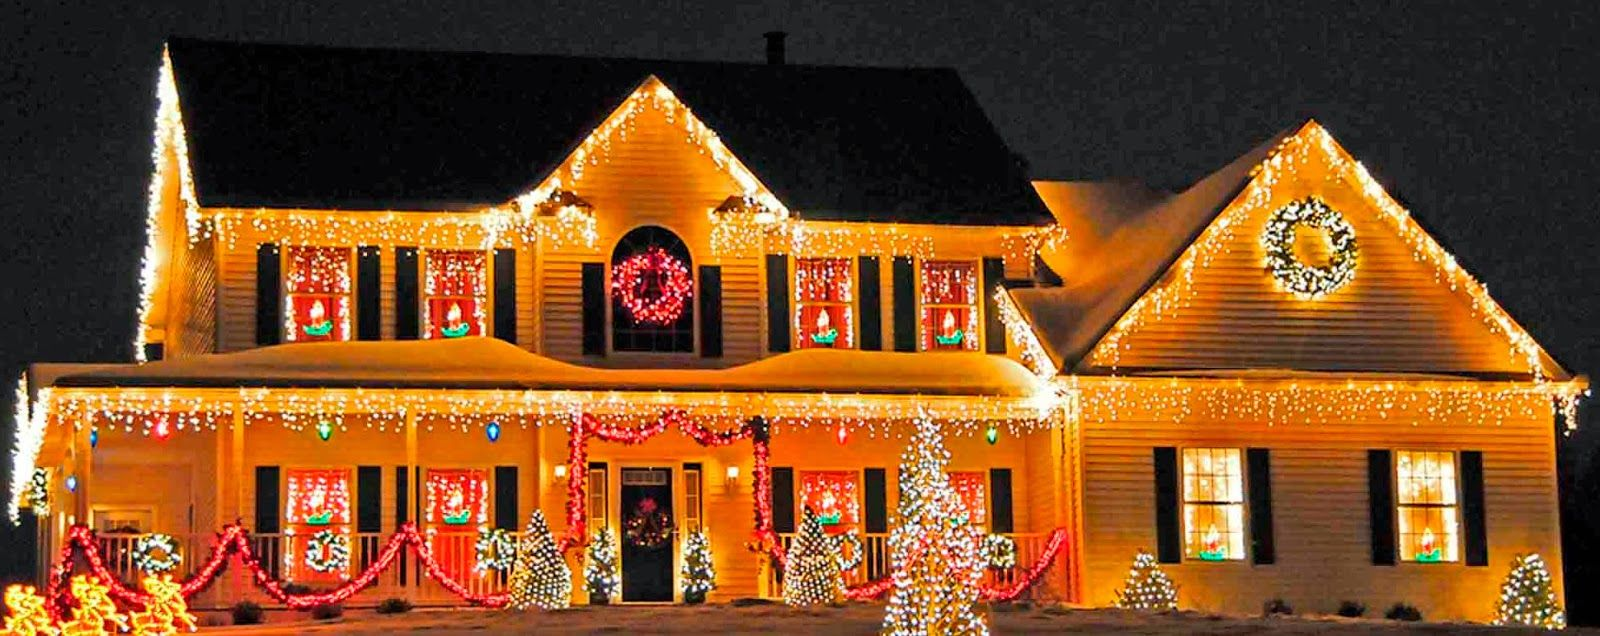 Beautiful outdoor christmas decorations - Beautiful Christmas Lights On Houses Lights Christmas Lights Wallpaper Christmas Lights On Houses